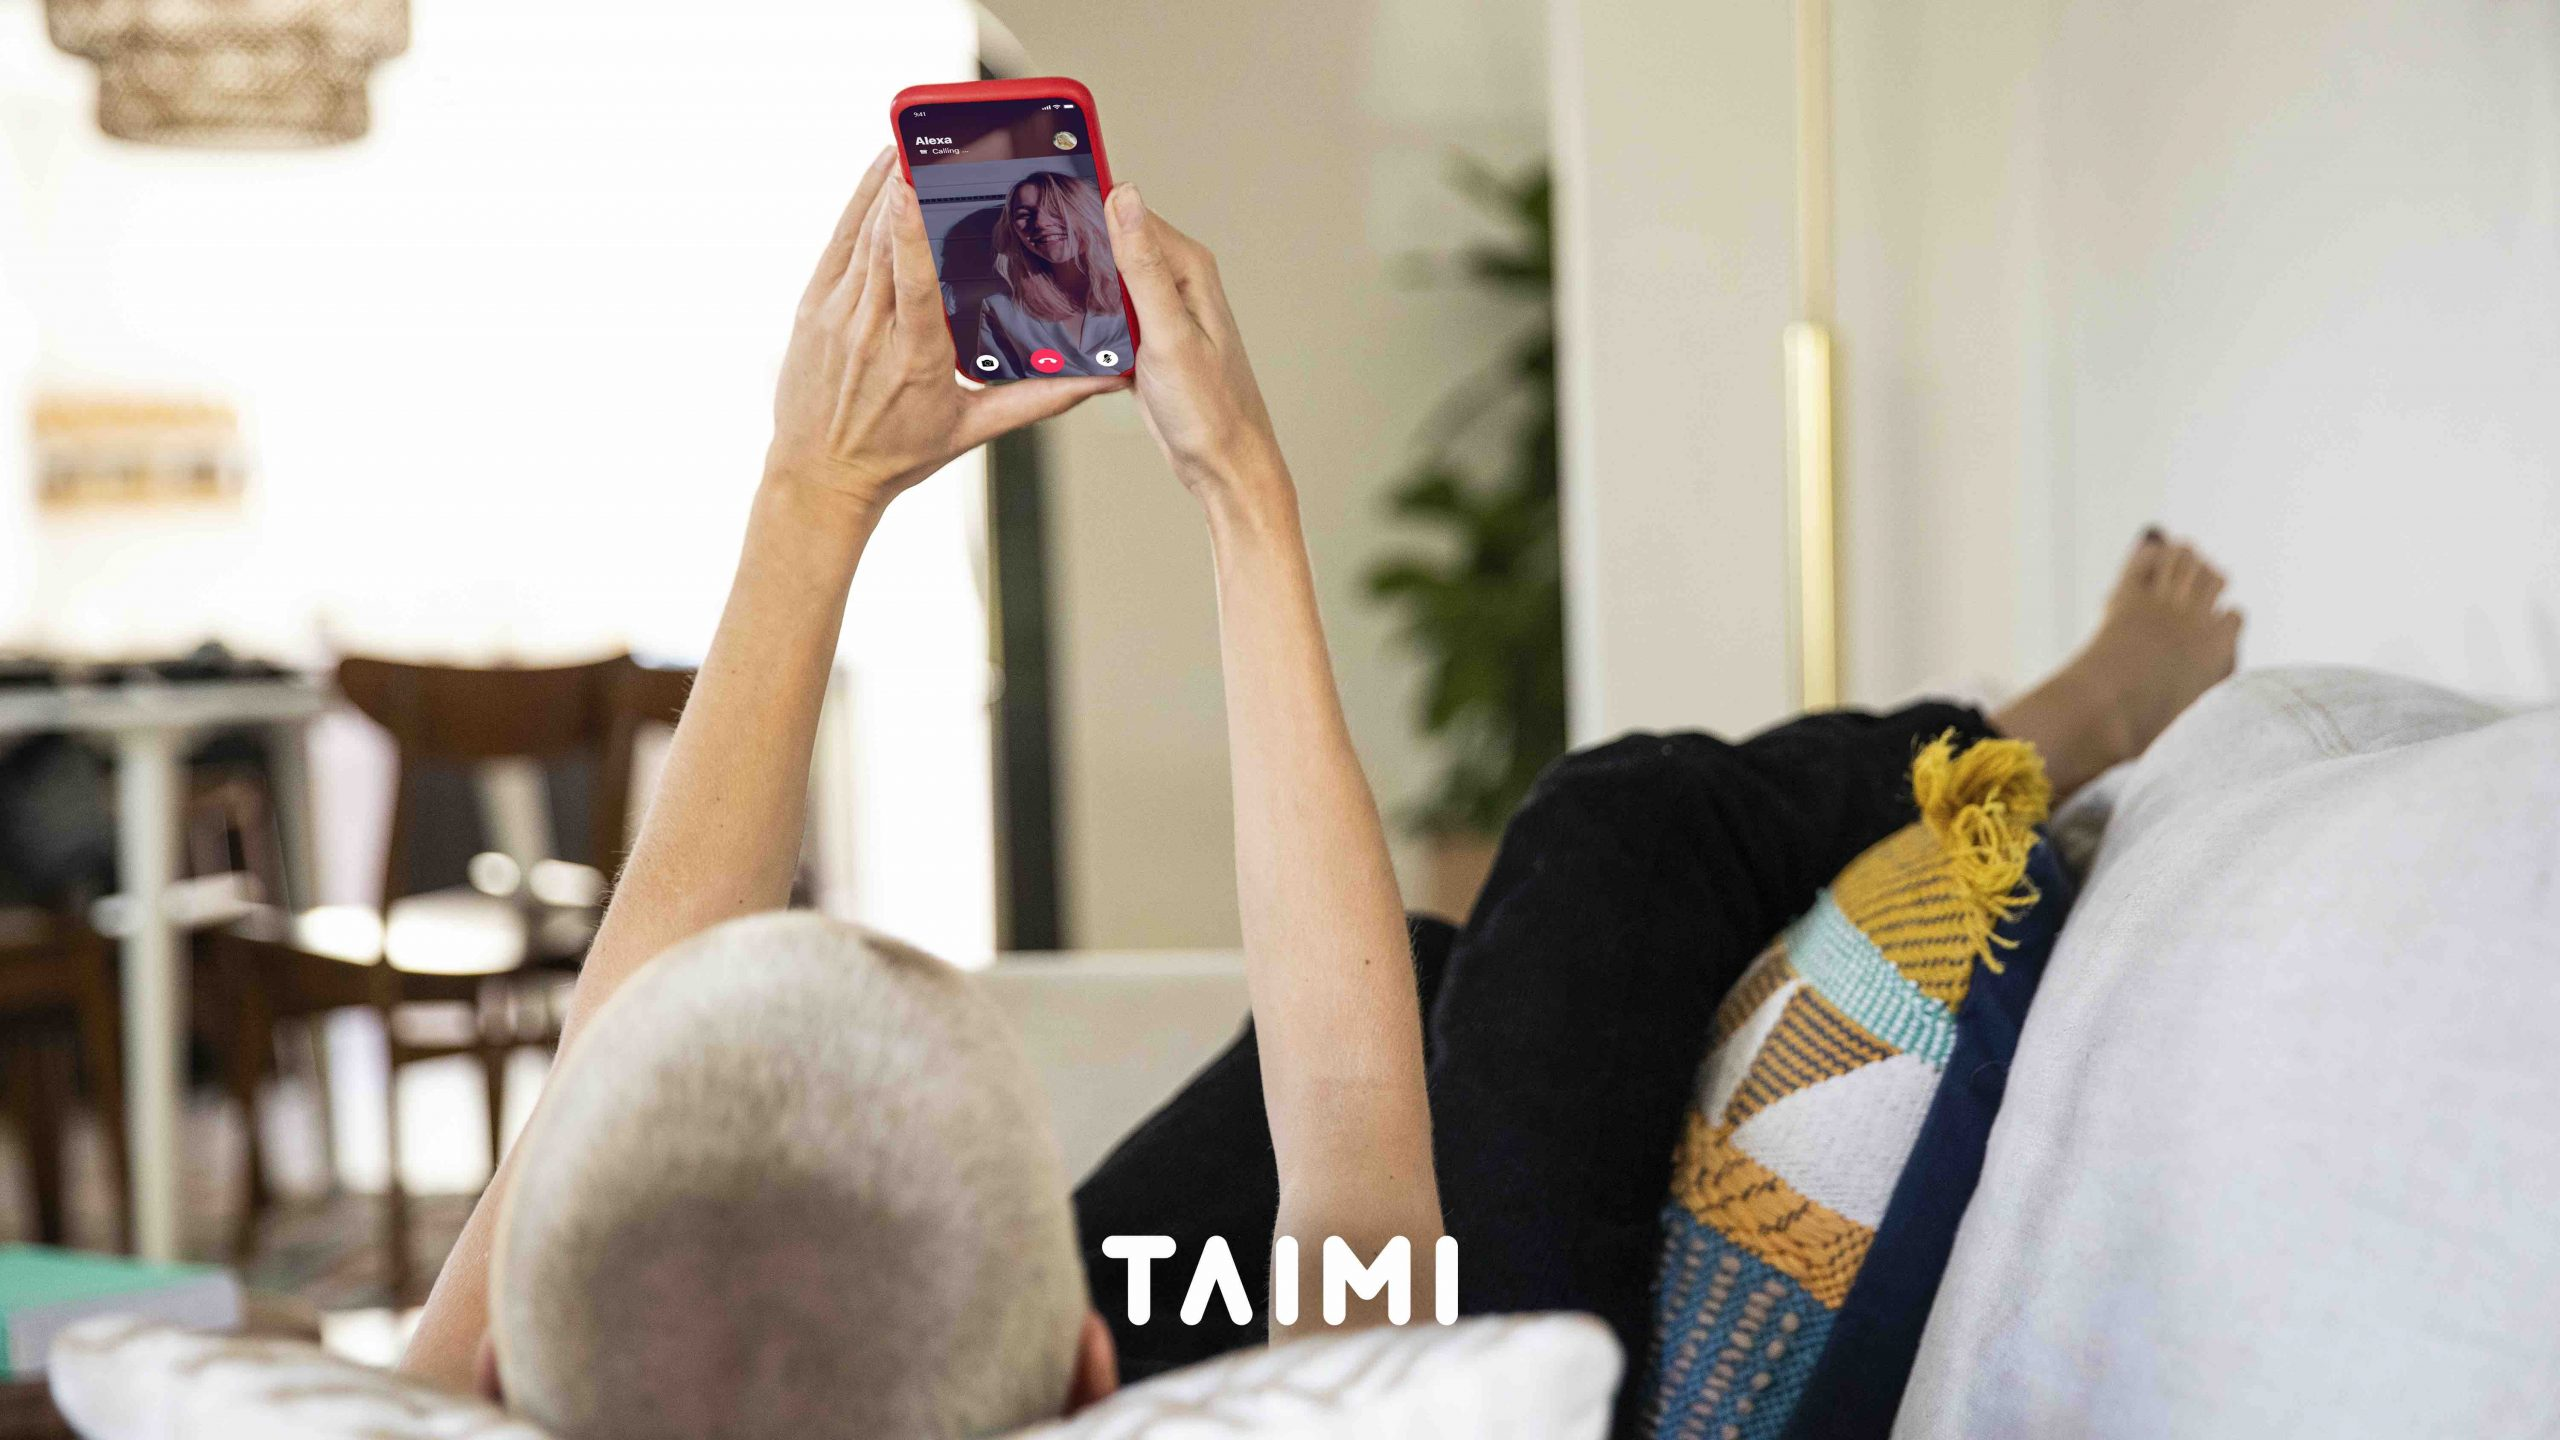 TAIMI reminds dating app users to social distance and video call each other